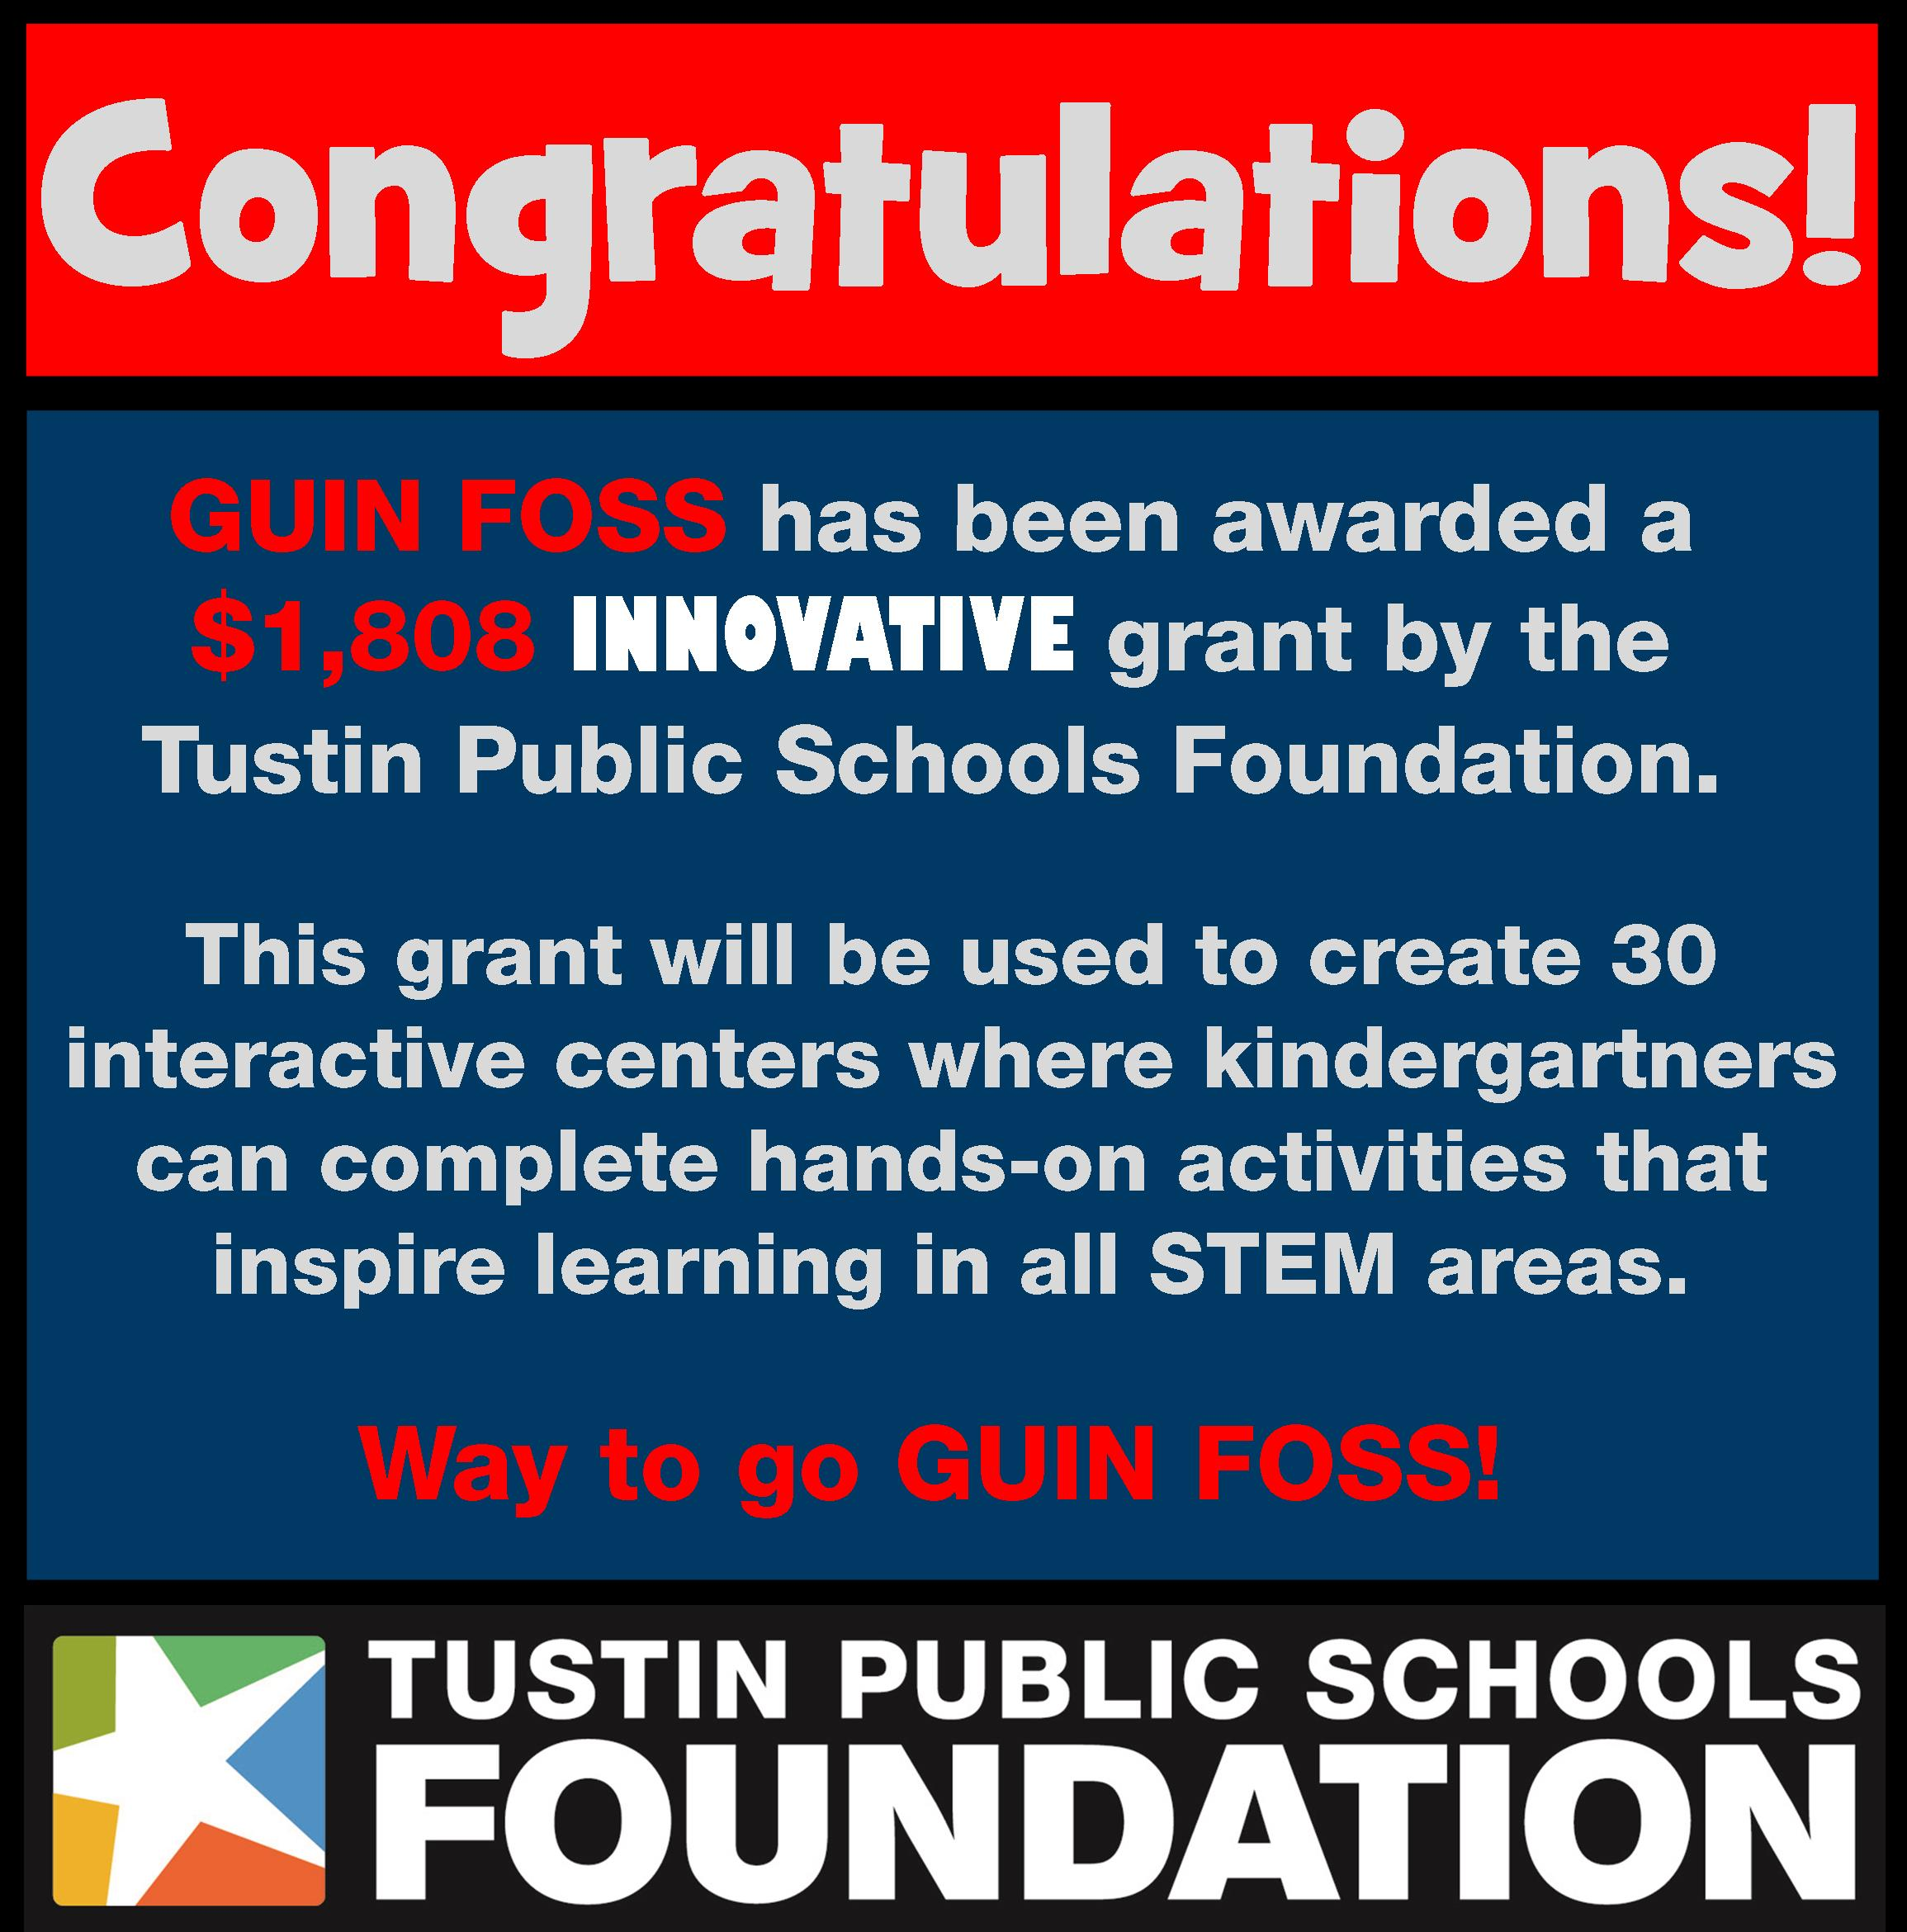 Guin Foss Innovative 2016.jpg